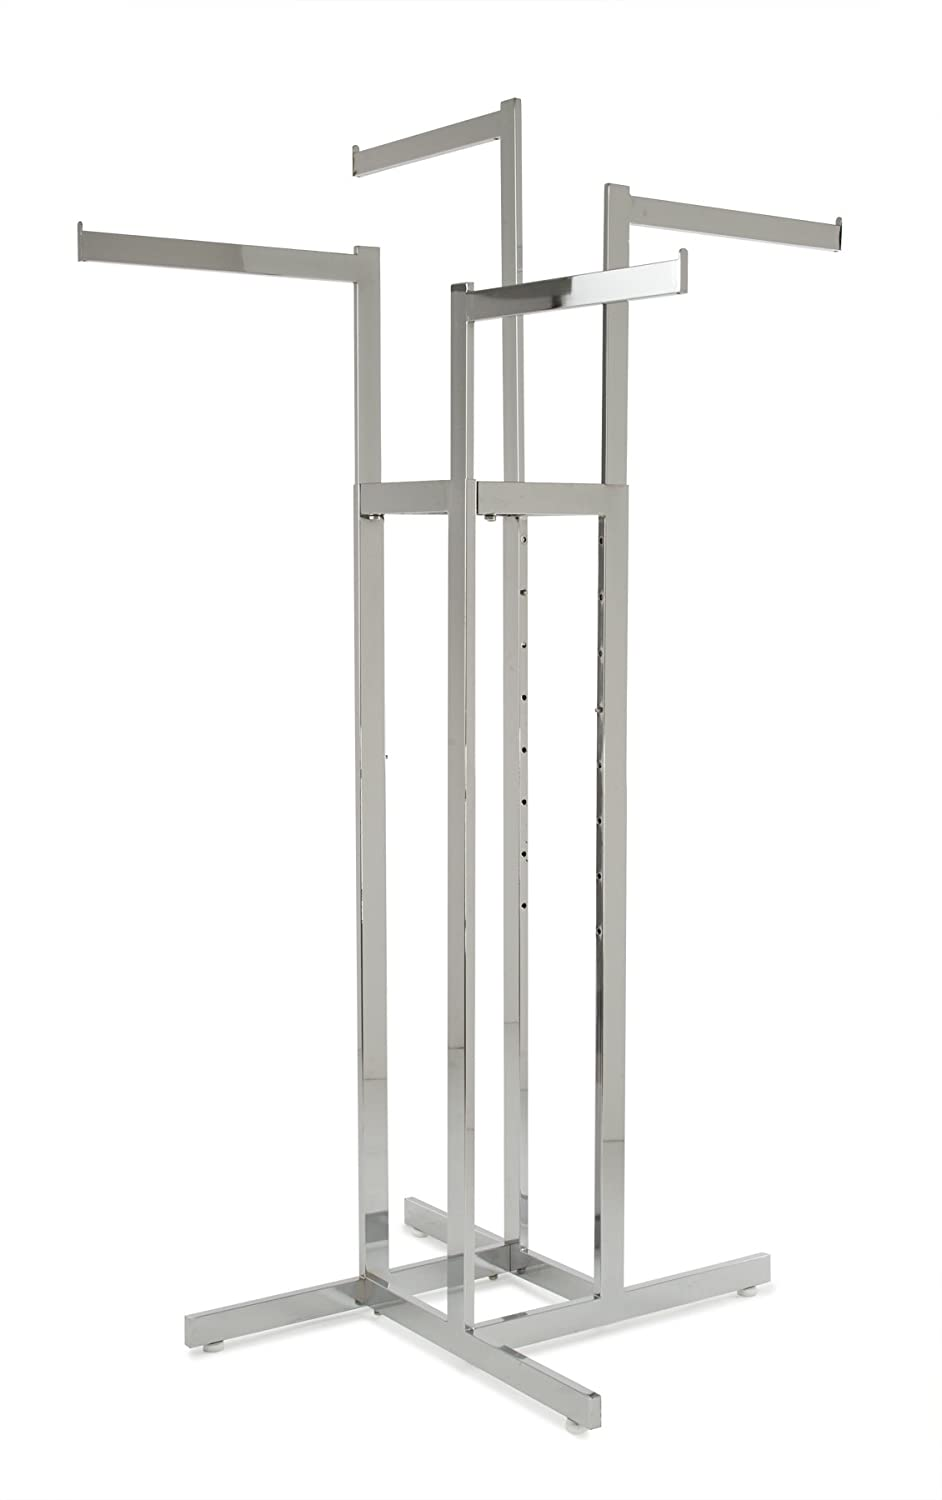 Econoco - Chrome 4-Way Clothing Straight All items in the store Rack Sales Adjustable Height